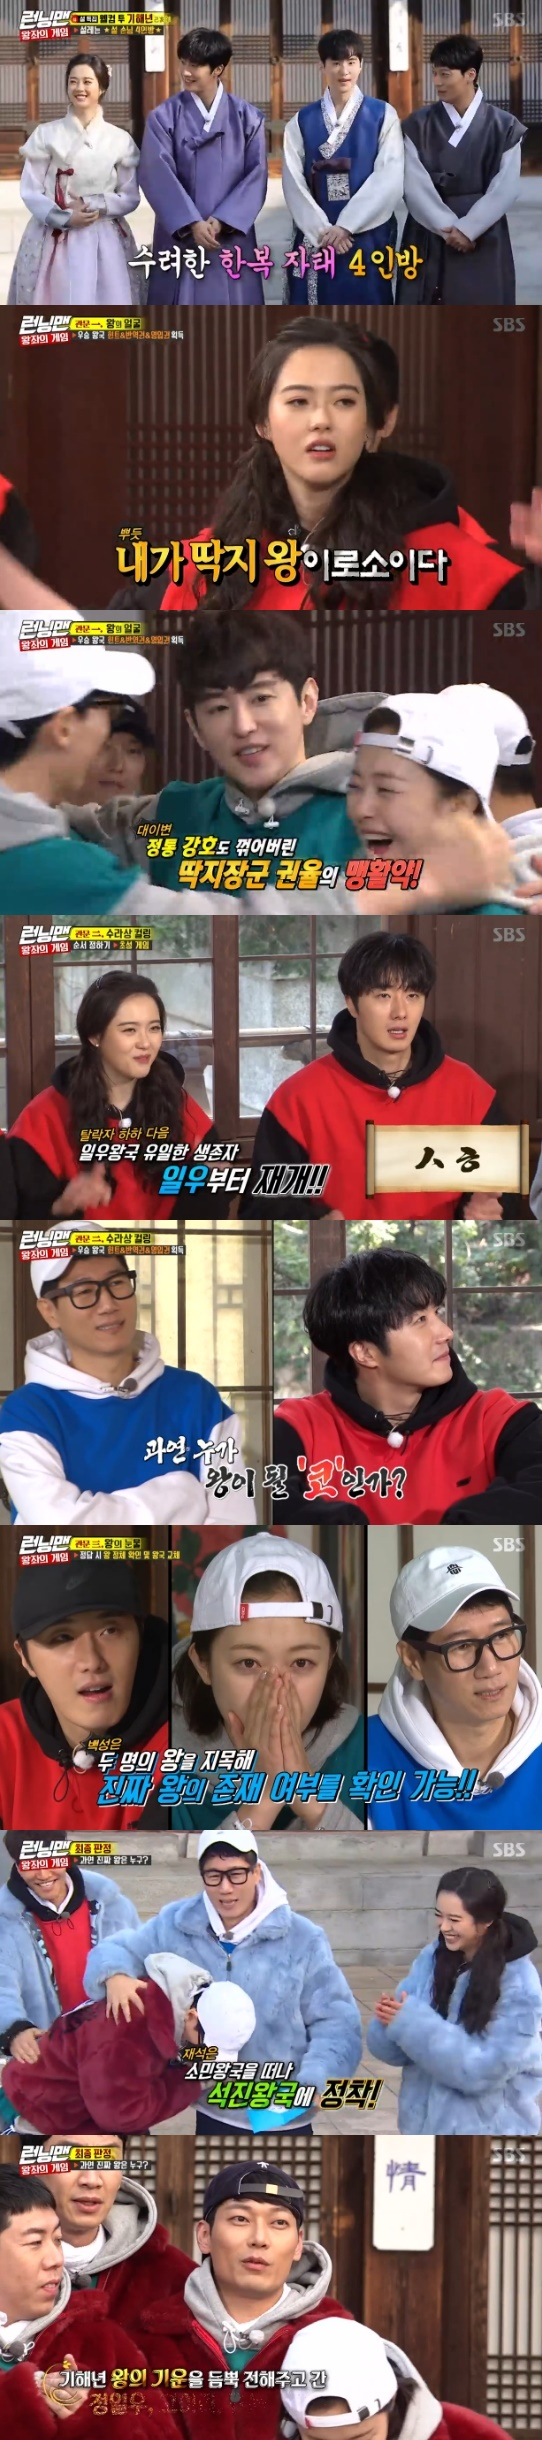 <p>3 days broadcast SBS good Sunday - Running Manin the night Hoon Yoo Jae-Suk, JI Suk Jin and the episode about revealed.</p><p>This day, Go Ah-ra, Jung Il-Woo, Park, Hoon, Kwon Yul, this appeared with, I Wang Yi be a traders race unfolded. The final people are the most many Team Wang Yi judgment in a, the real Wang Yi that the teams Seungri. But fake Wang Yi the fake Wang Yi alone Seungri.</p><p>The King candidates that analysis, of, Min. The first is the Wang Yi has been hand disease, finger folding game. The Kings face plates are the last remaining team Seungri. Seungri team in Copenhagen hints, film rights, import rights are given.</p><p>The stone with the Kingdom of the fallen after the civil Kingdom, if the Kingdom is just not secret. Kwon Yul is just not on the floor in scab men. Kwon Yul is calmly then I Beyond. Zero was caught,he said, his words like a succession scab flips. Seungri for the people the King a hint about the after receiving the to eat easy in this light to the spirit. Ago min is Kwon Yul returned to the metro area.</p><p>The second gate is called Curling. Night lessons at the suggestion of the seconds the game started. Of keep the beat dont fit laugh self. Days you Kingdom early eliminated after the Outnumbered was a stone with a Kingdom of small people in the Kingdom to beat. This game called Curling in a small people Kingdom or Seungri. A hint on the code development have been and never was, people Kingdom, the people began to shake. Small people Kingdom Park Hoon UP.</p><p>The third gate is the king of tears. Yoo Jae-Suk, Lee Kwang-Soo that Suk Jin, Jung Il-Woo during the Wang Yi You knew. A real king is silly. The final stone with the Kingdoms people Go Ah-ra, Kim Jong Kook and the last rebellion tickets wrote Yoo Jae-Suk, Kwon Yul. Fake king to serve the other members of the water bomb hit.</p>